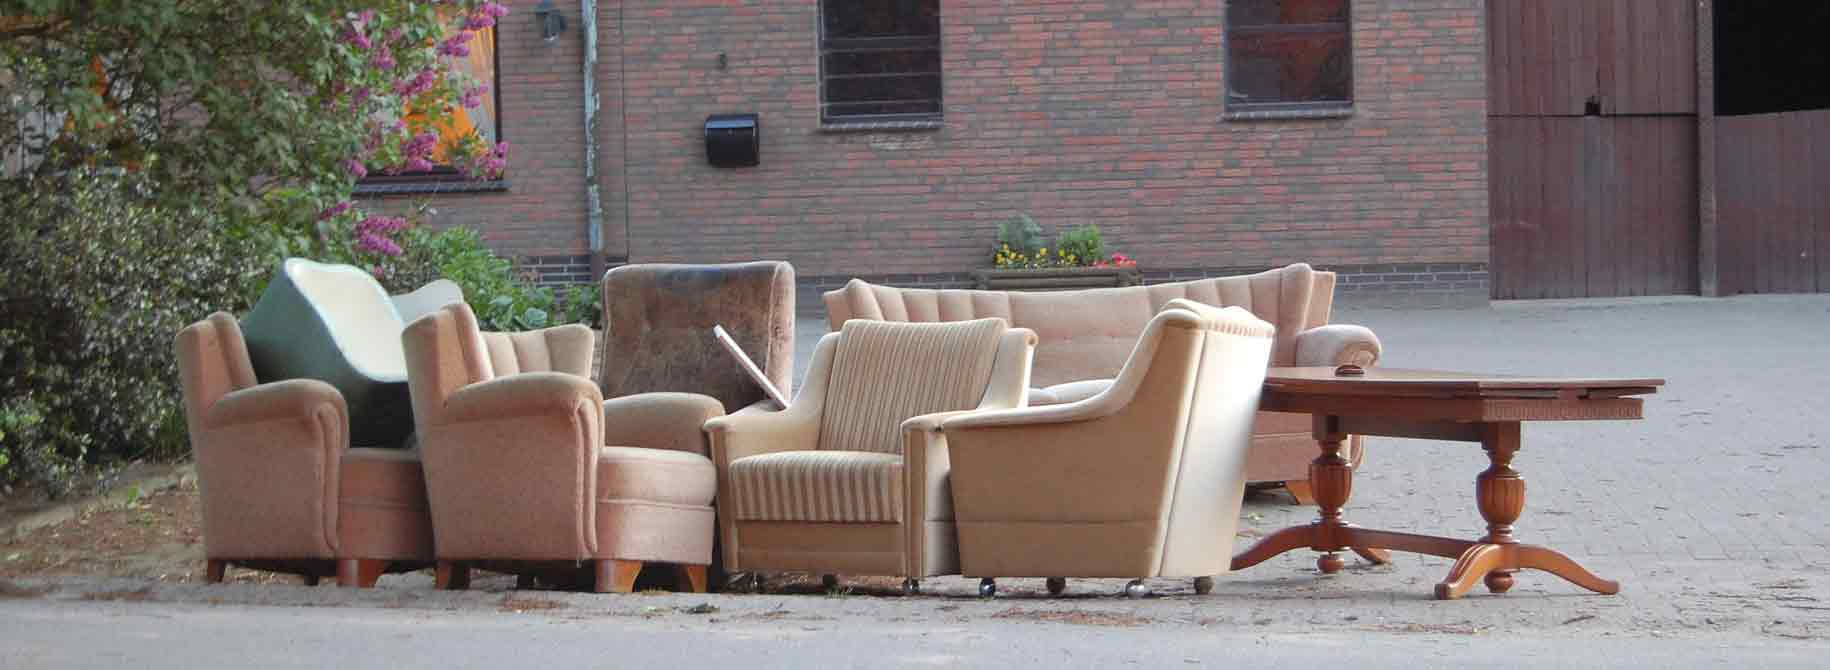 furniture on the street waiting pickup